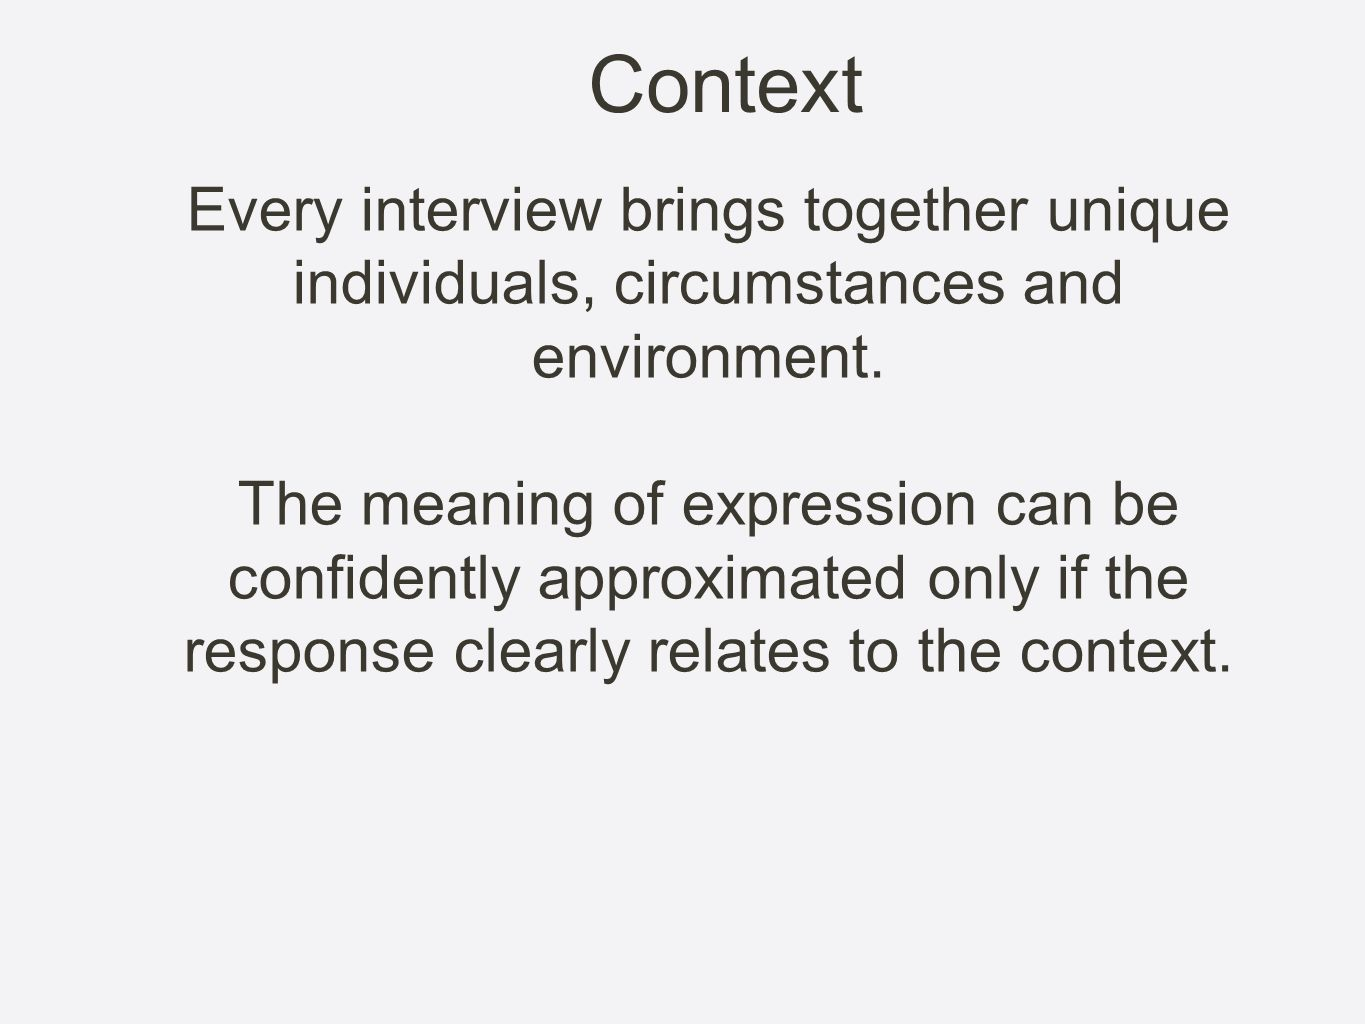 ContextEvery interview brings together unique individuals, circumstances and environment.